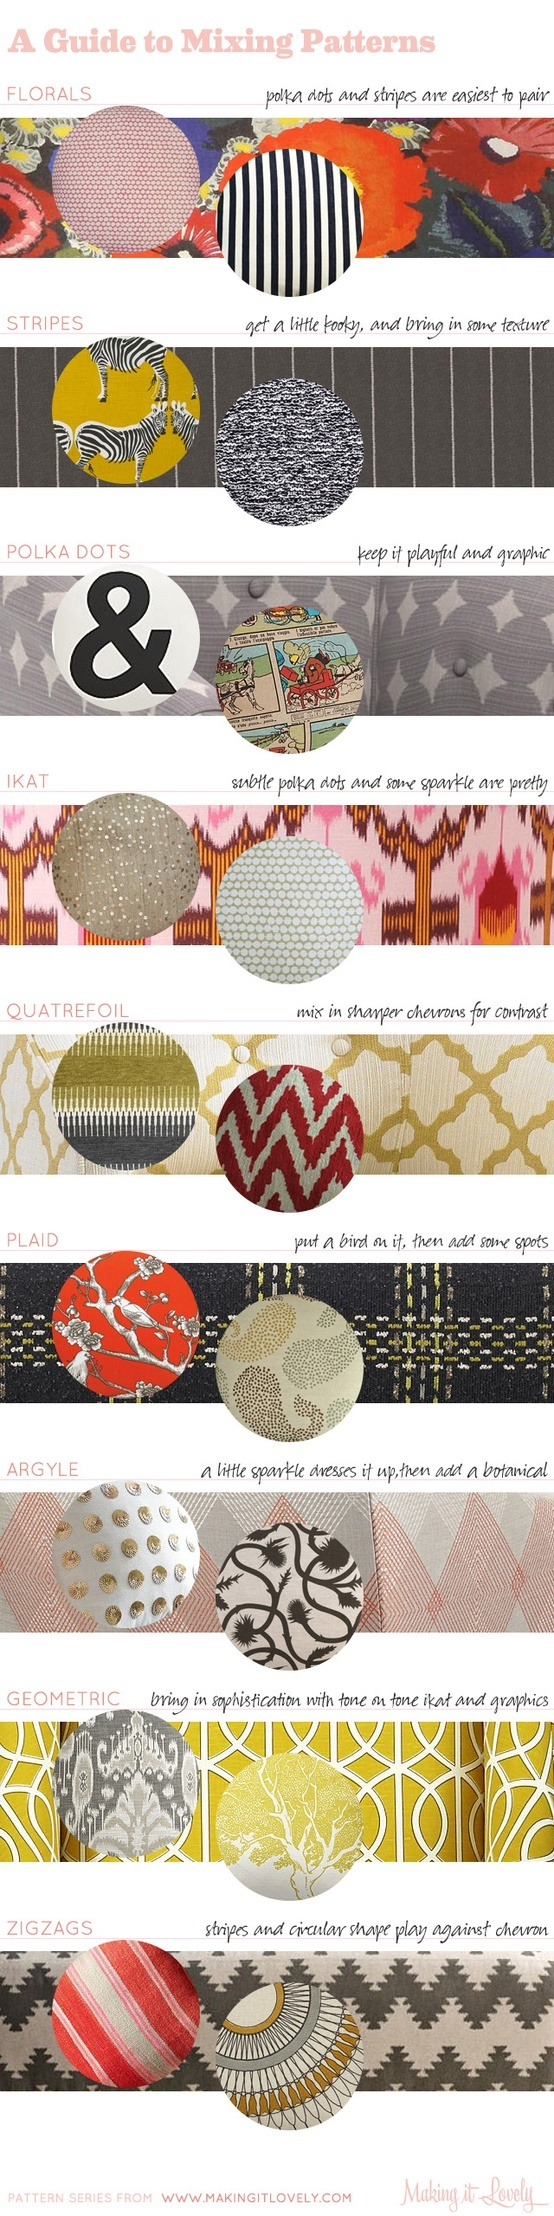 A Guide to Mixing Patterns